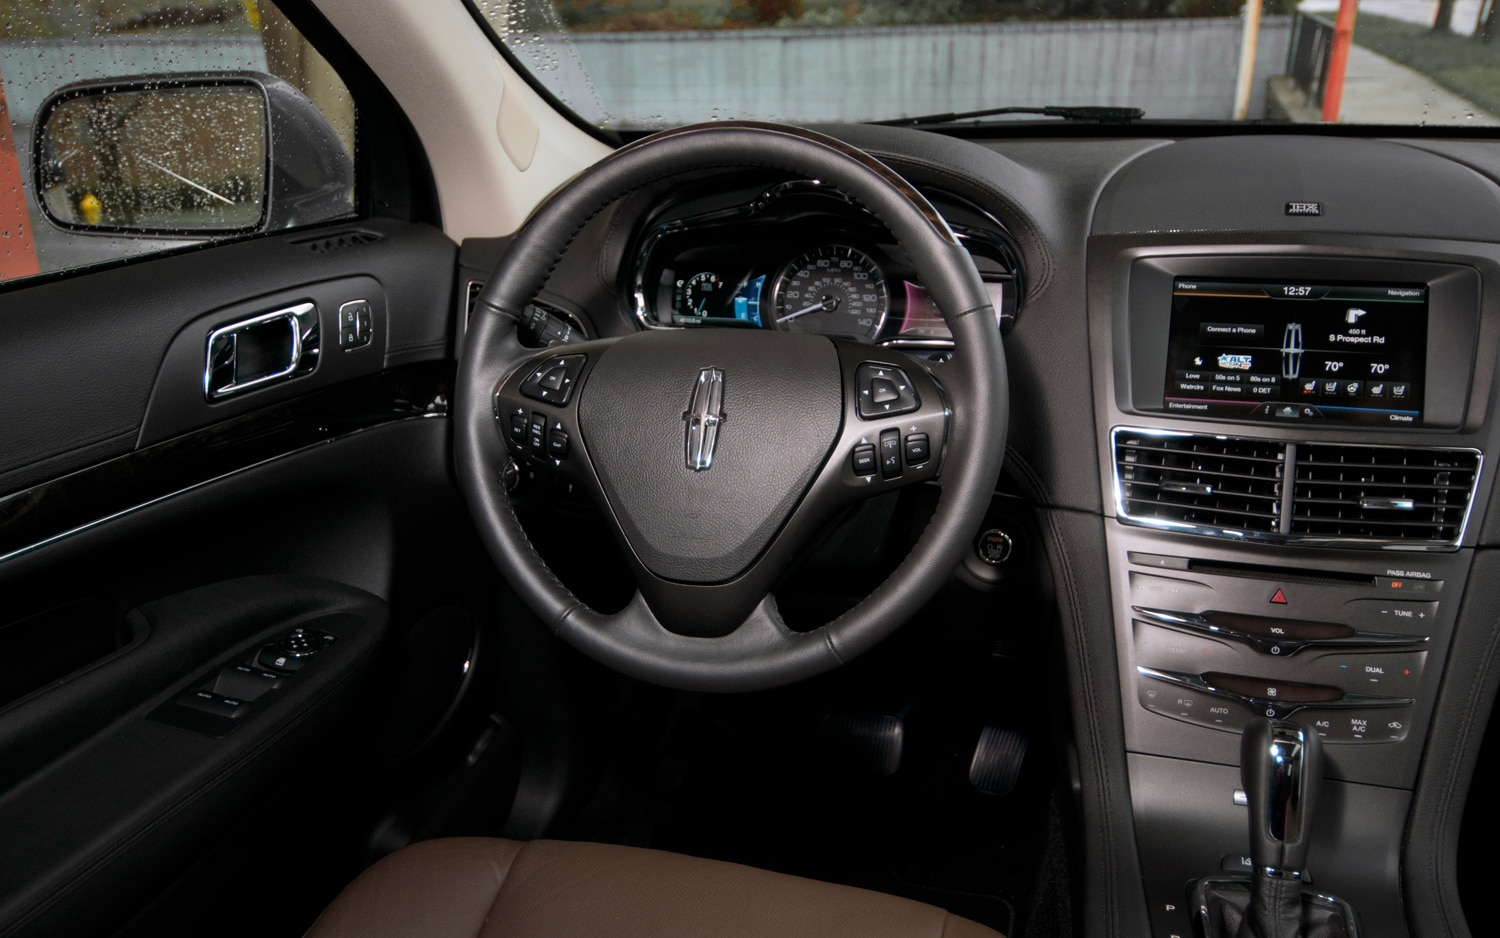 2013 Lincoln MKT Ecoboost - Editors' Notebook - Automobile